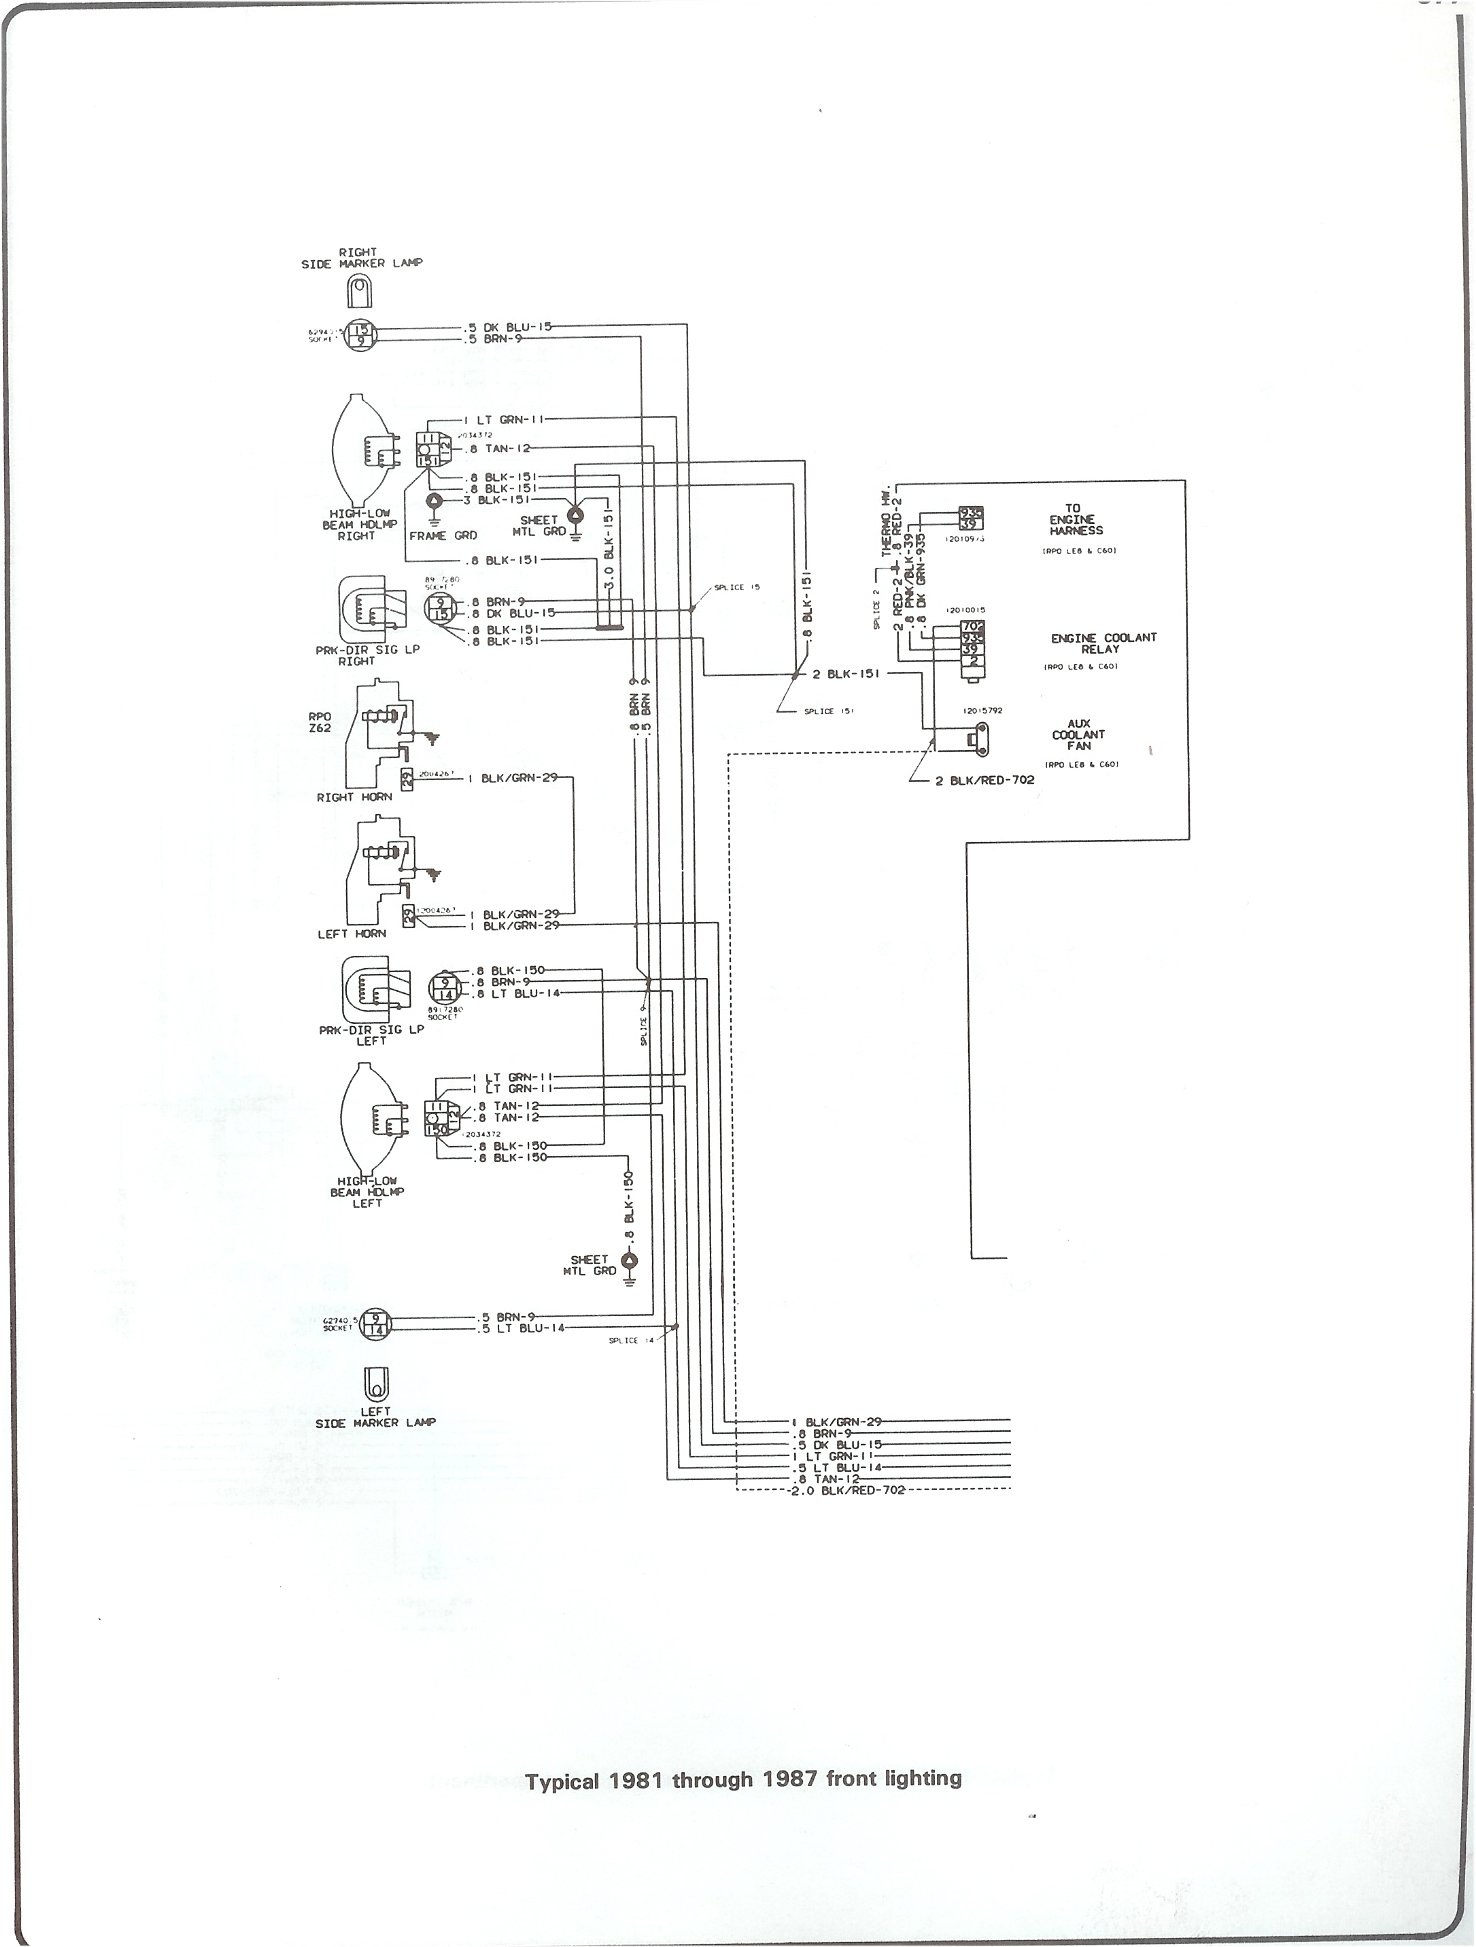 Brake Light Switch Wiring Diagram Blazer Forum Chevy Forums 2006 Malibu Tail 81 87 Front Lighting